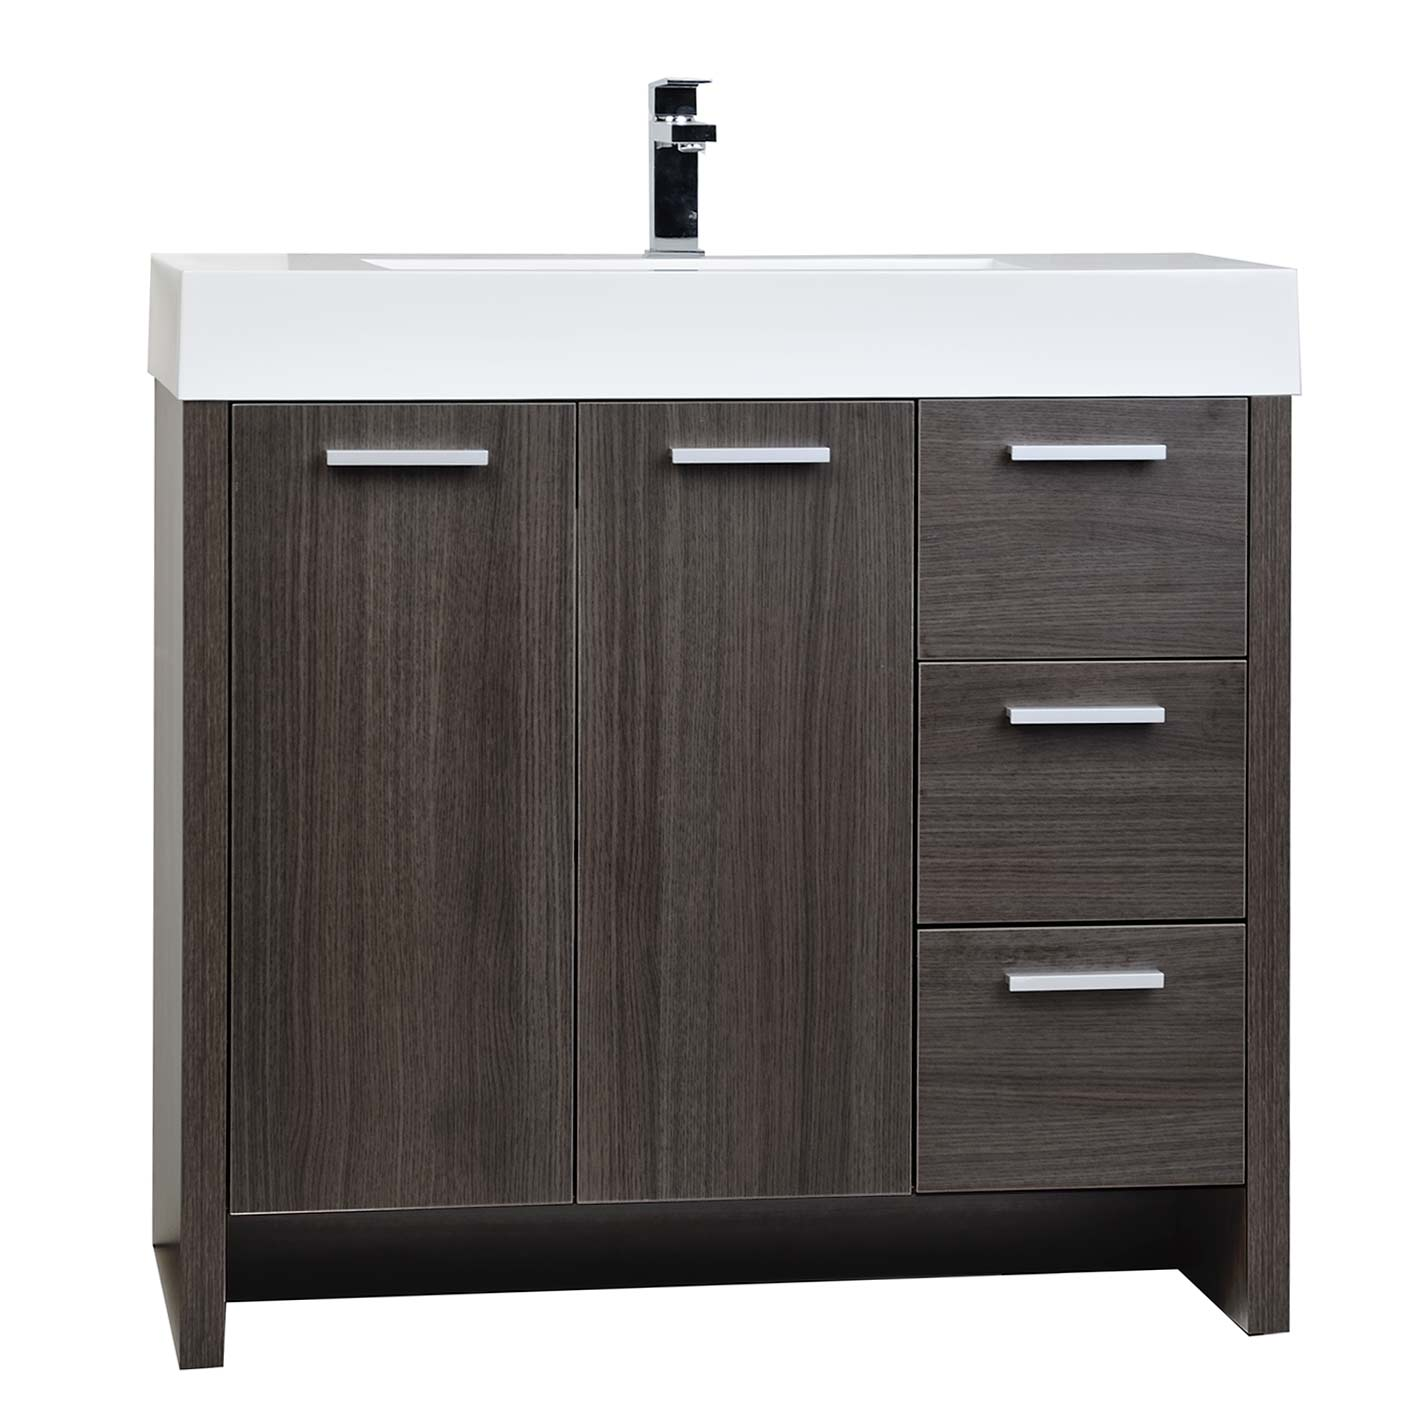 "Buy 35.5"" Modern Bathroom Vanity Grey Oak Finish TN-LY900 ..."